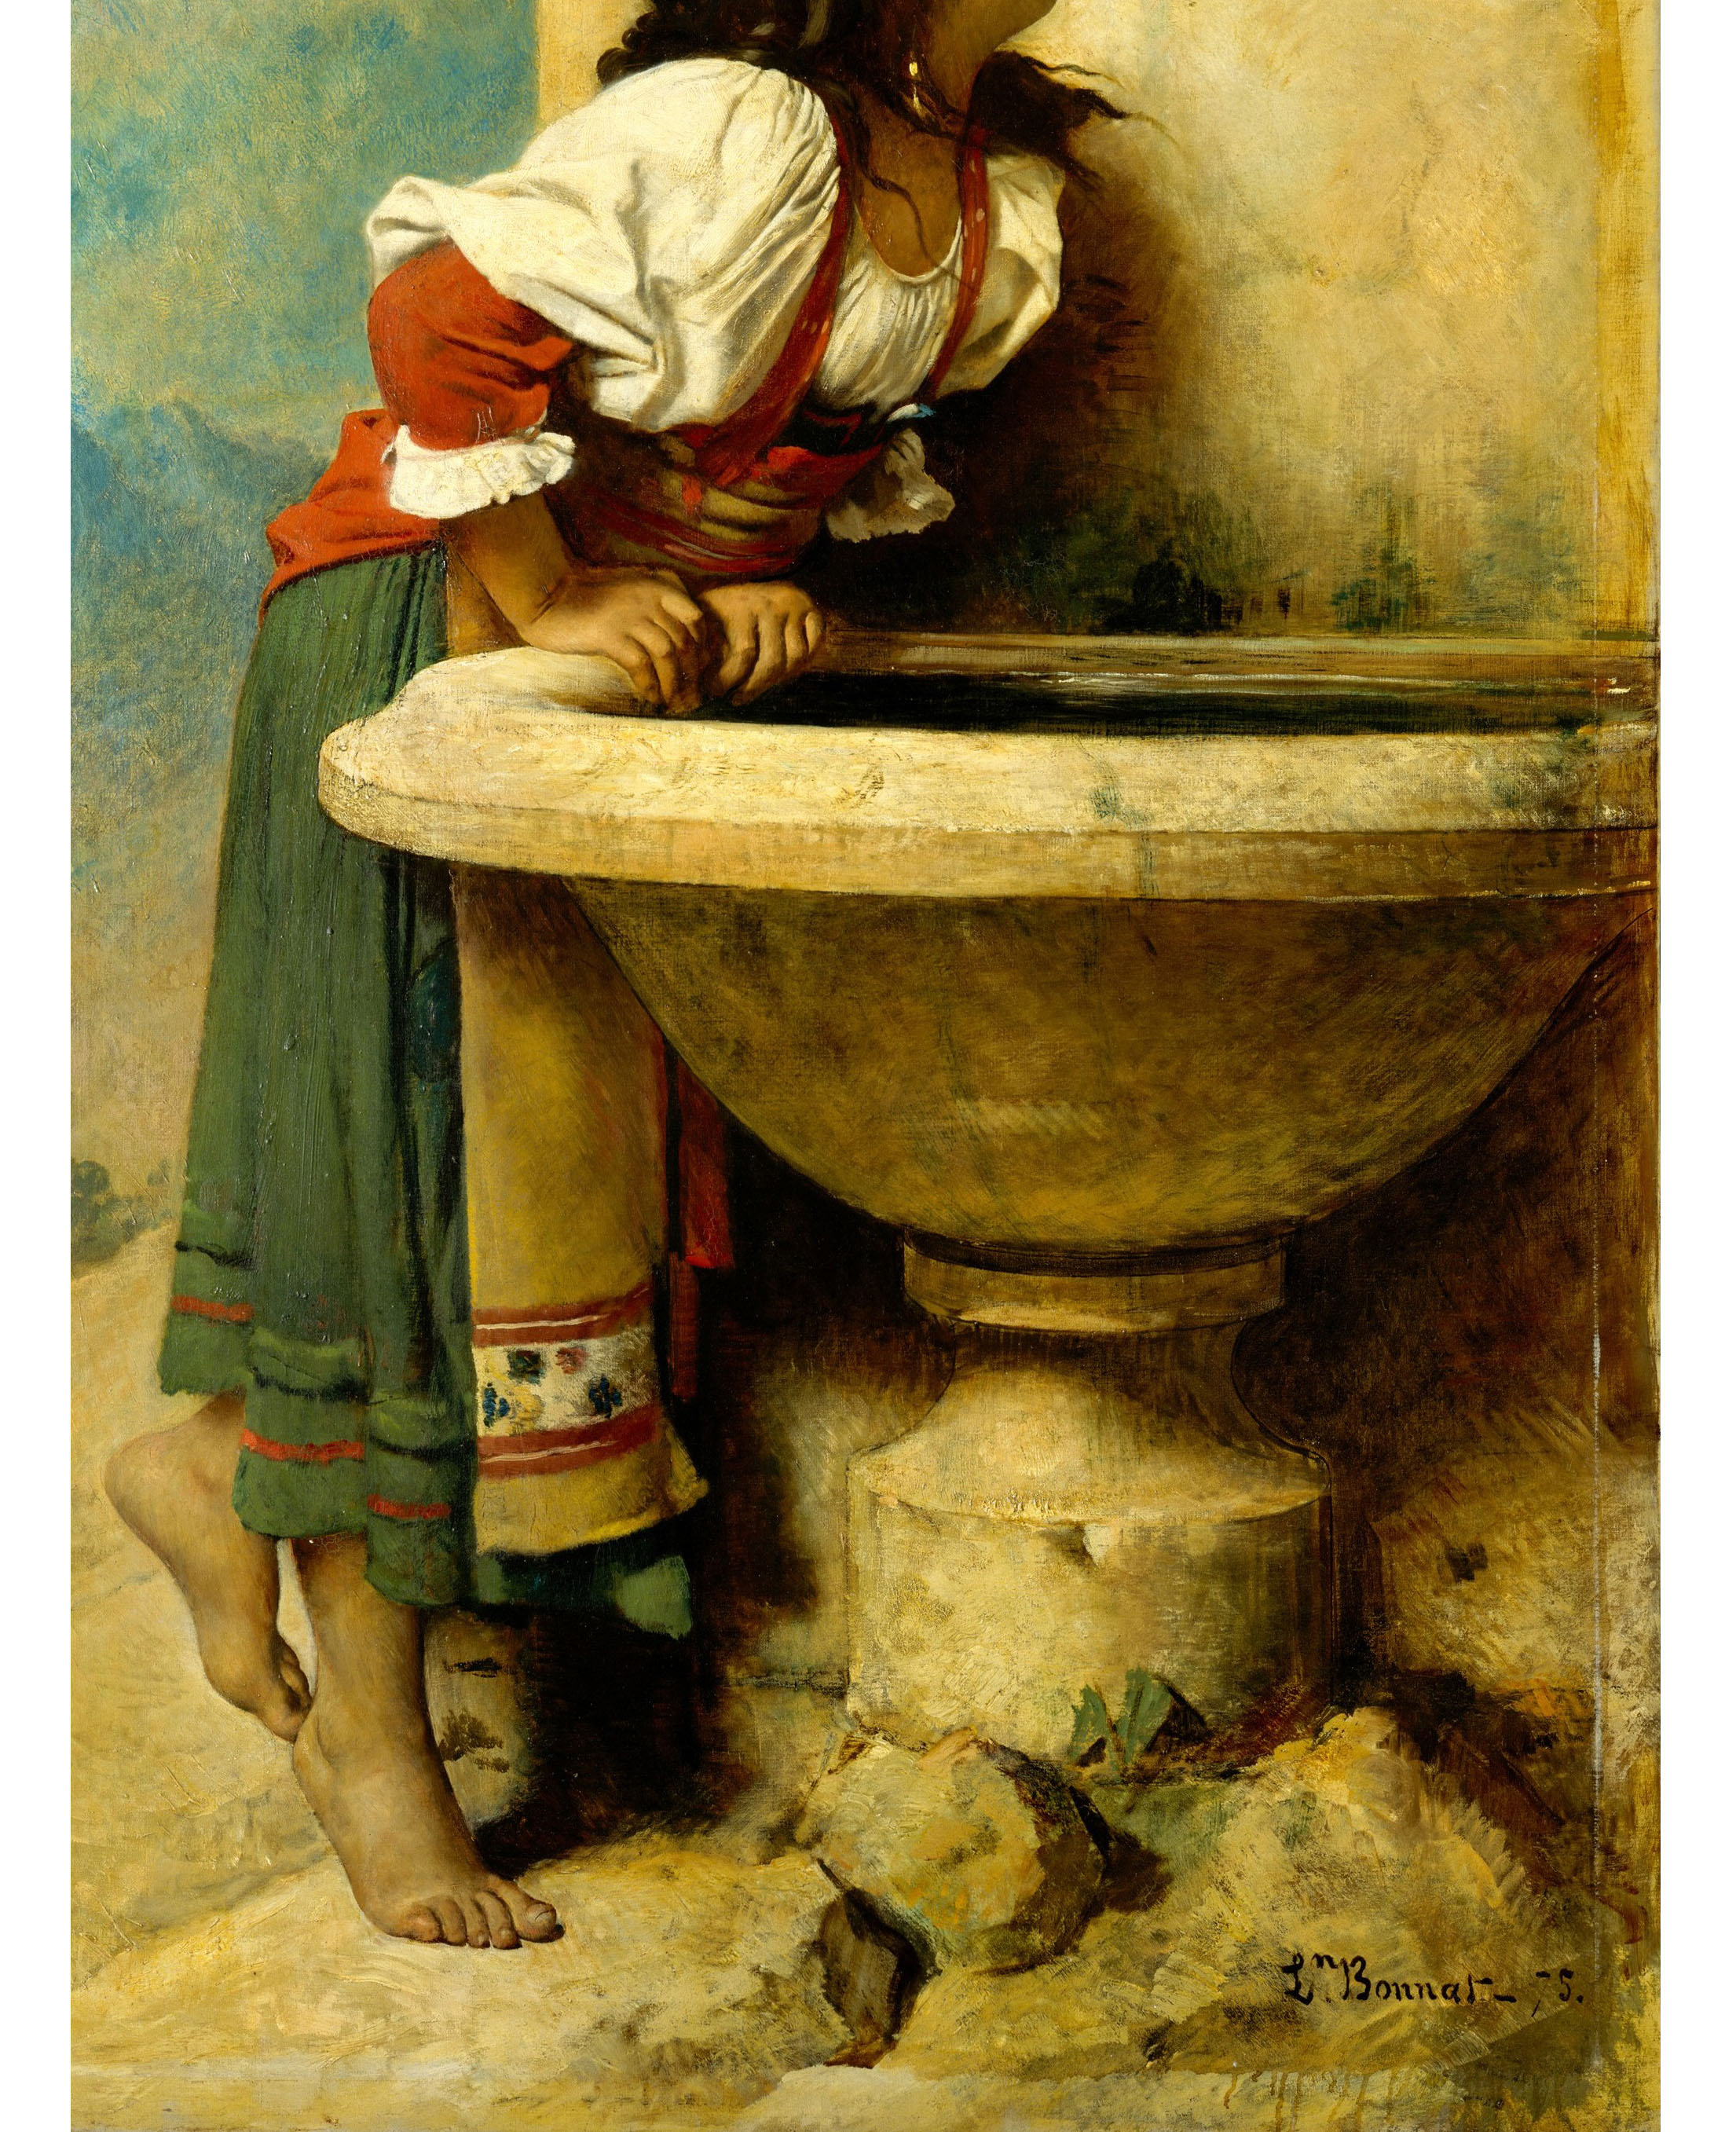 Dettaglio, Léon Bonnat (1833 - 1922), Roman Girl at a Fountain, 1875 (The Metropolitan Museum of Art, New York)